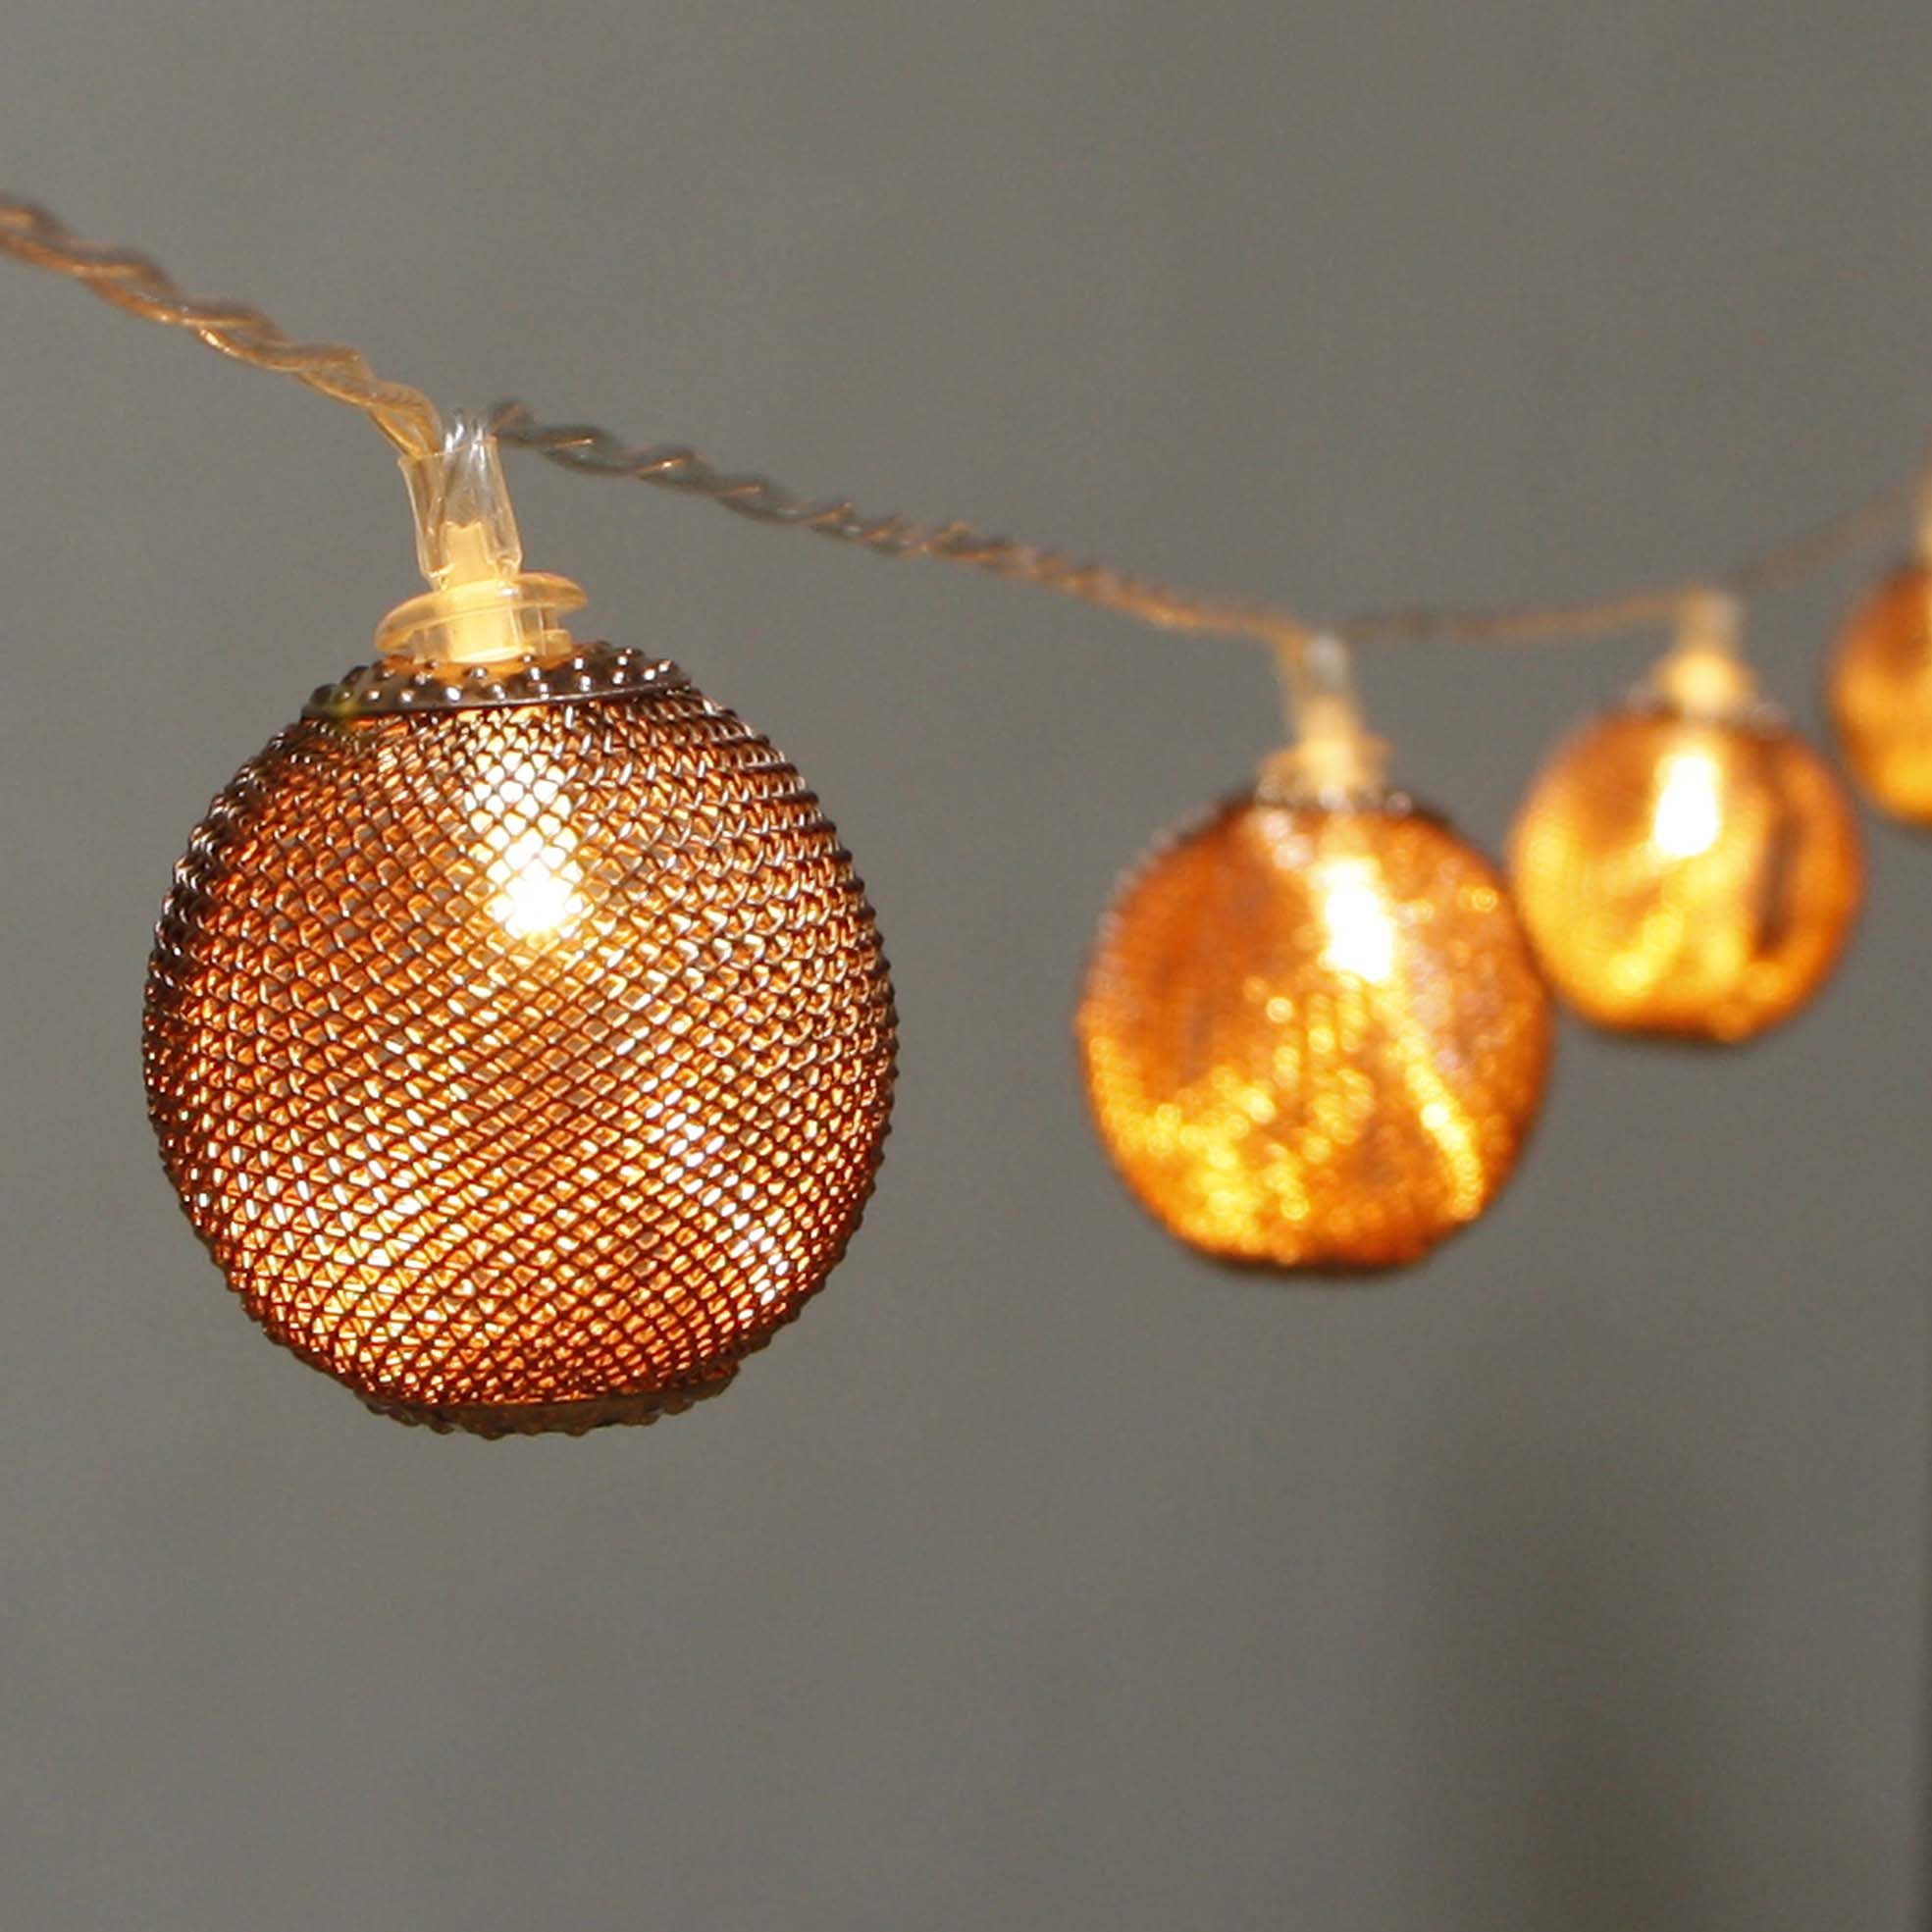 Color Coated Aluminum Steel Led Patio String Lights - Mesh Covers  MYHH02809-BO(B) – Zhongxin